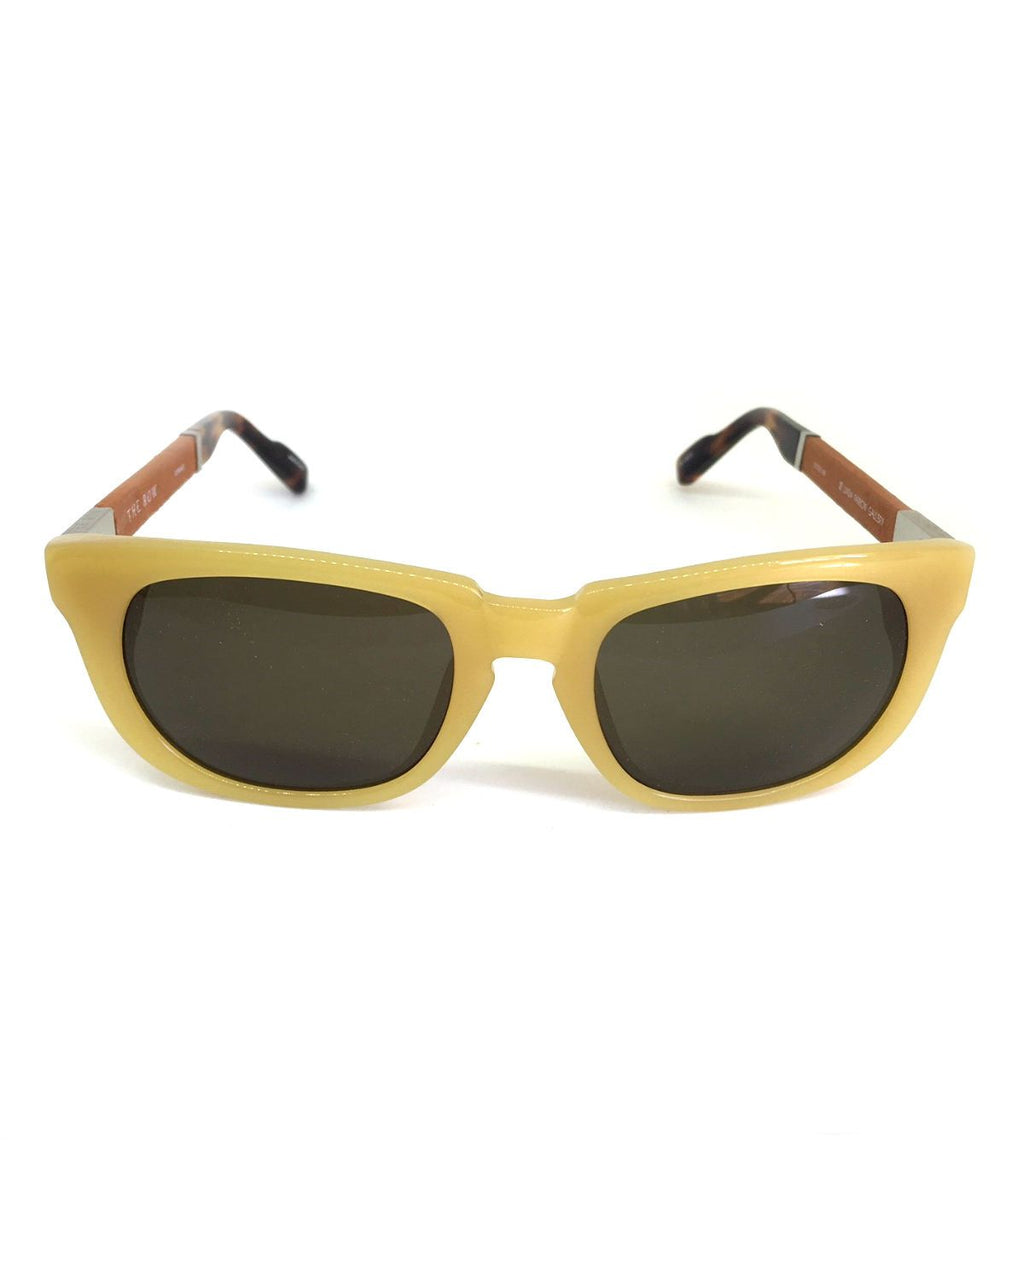 Linda Farrow THE ROW 64 C1 Sunglasses